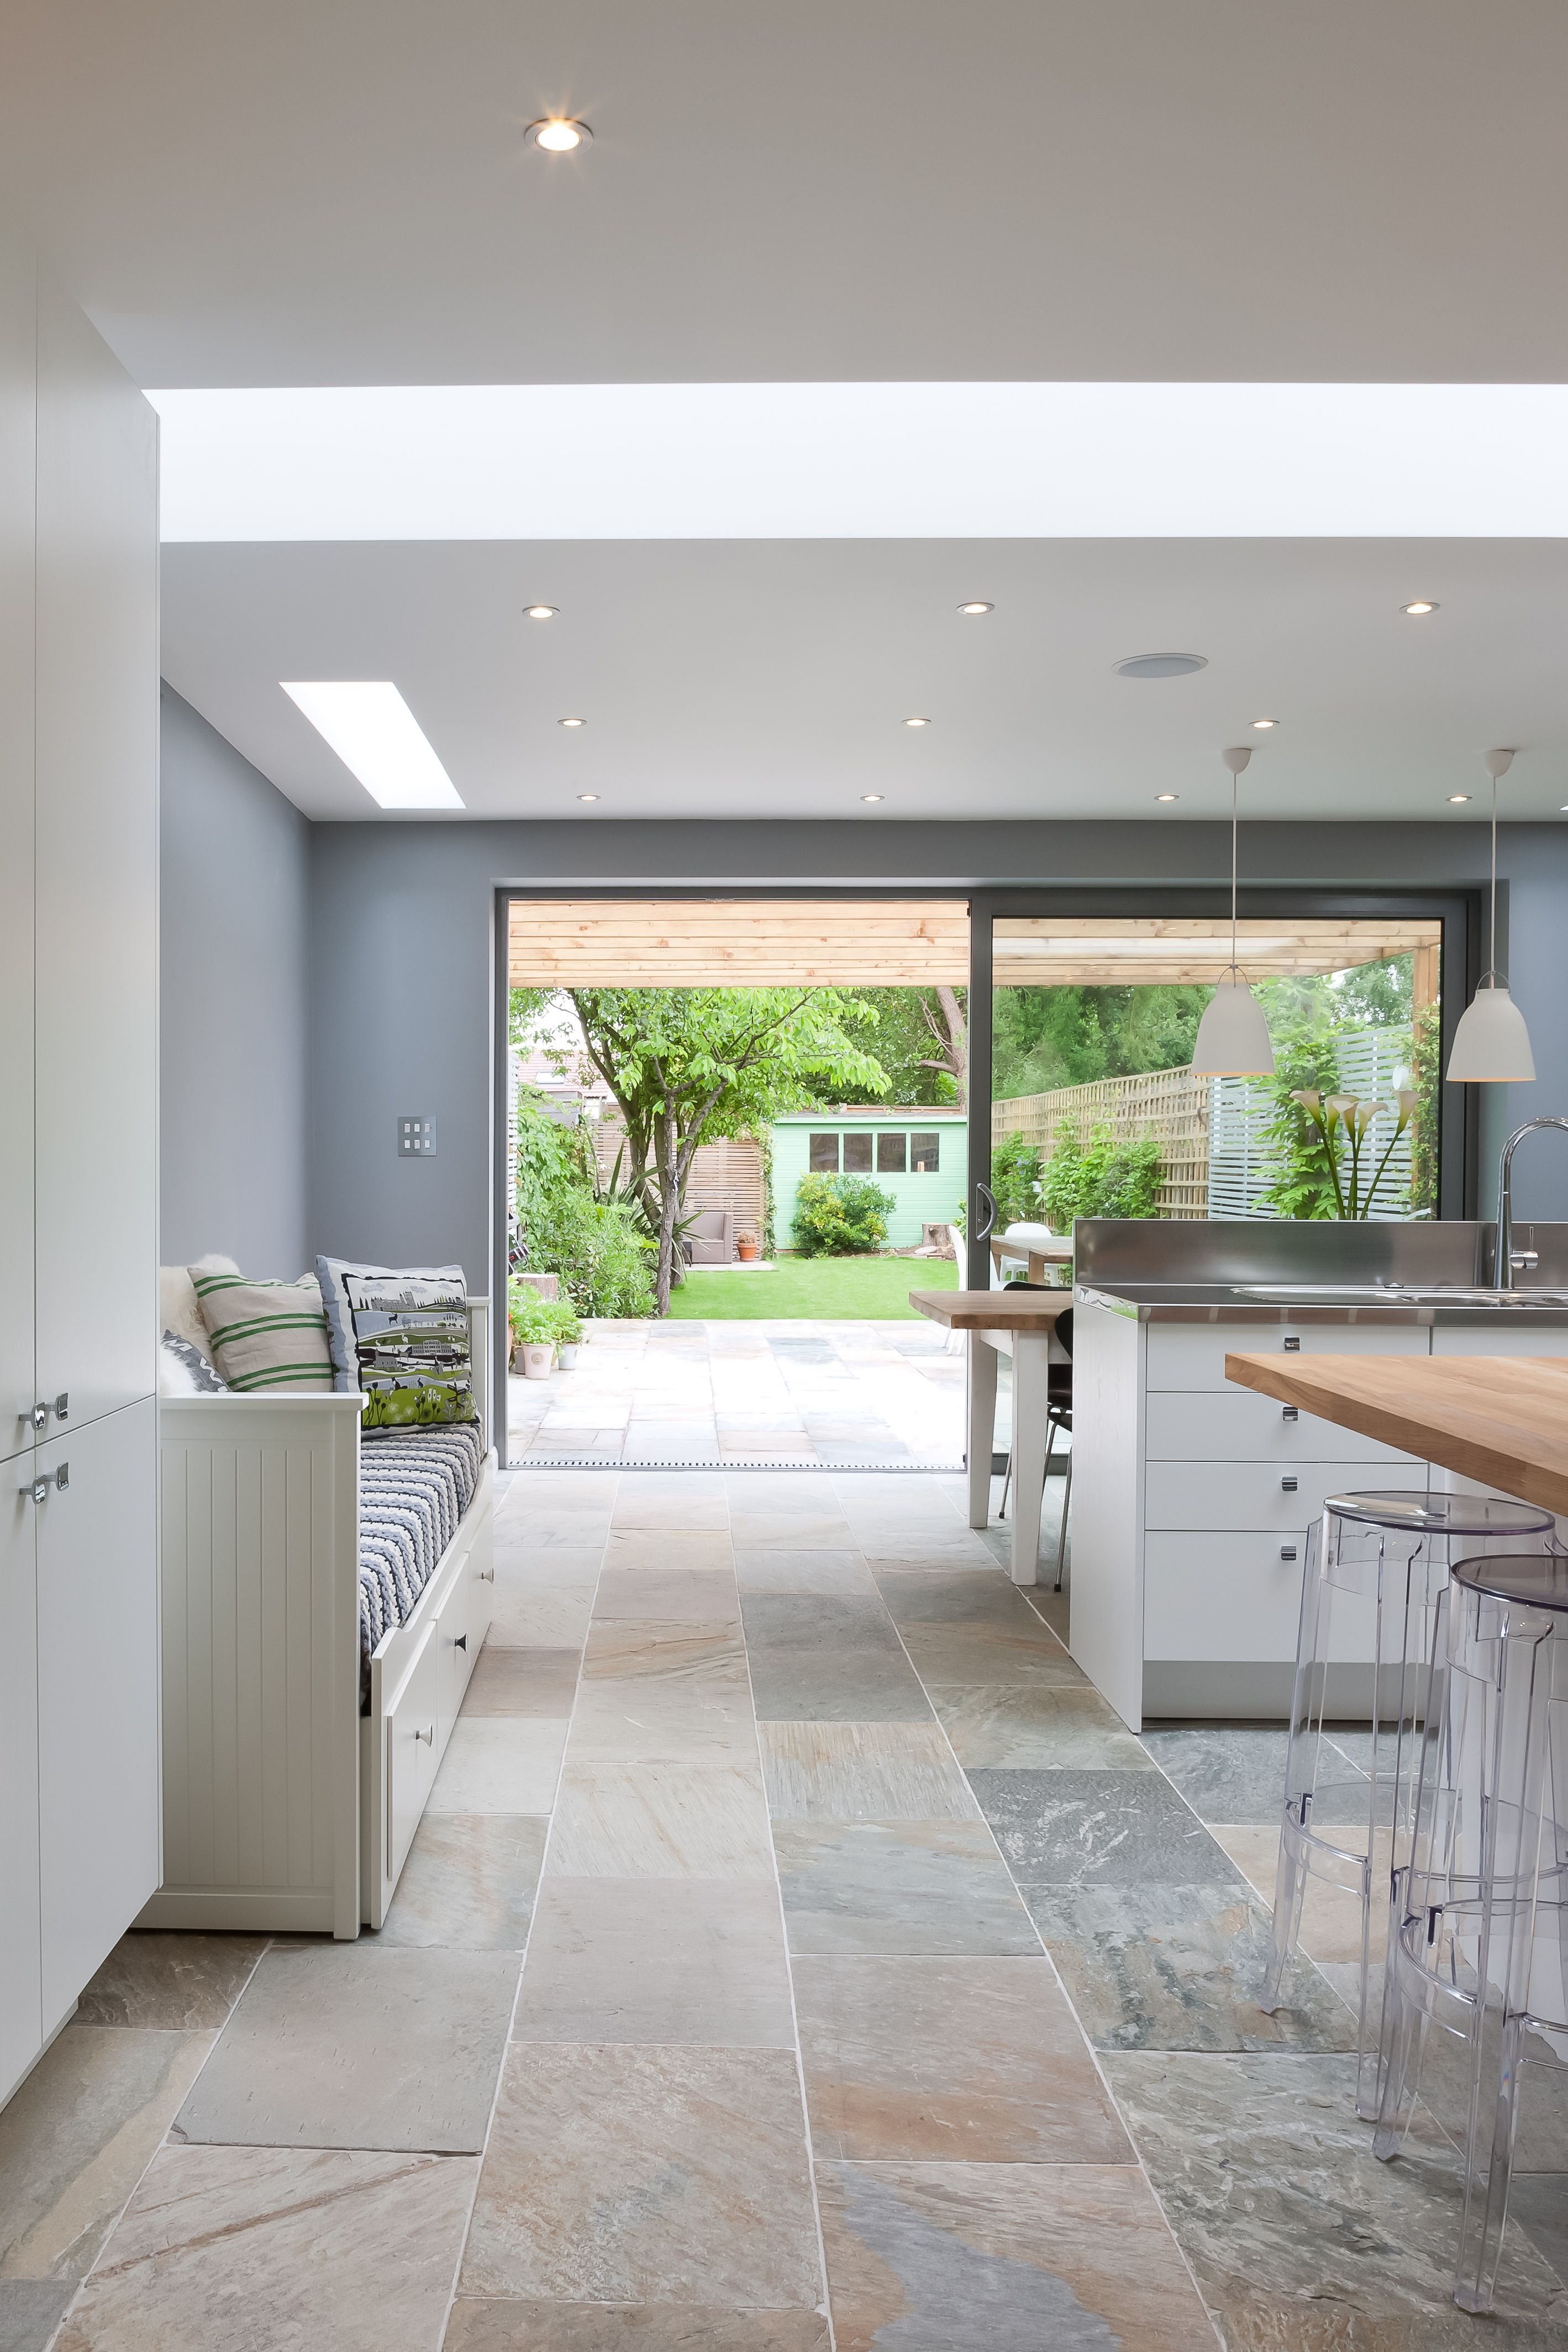 Kitchen Diner Extension Design 50 Degrees North Architects Ground Floor Rear Extension In South